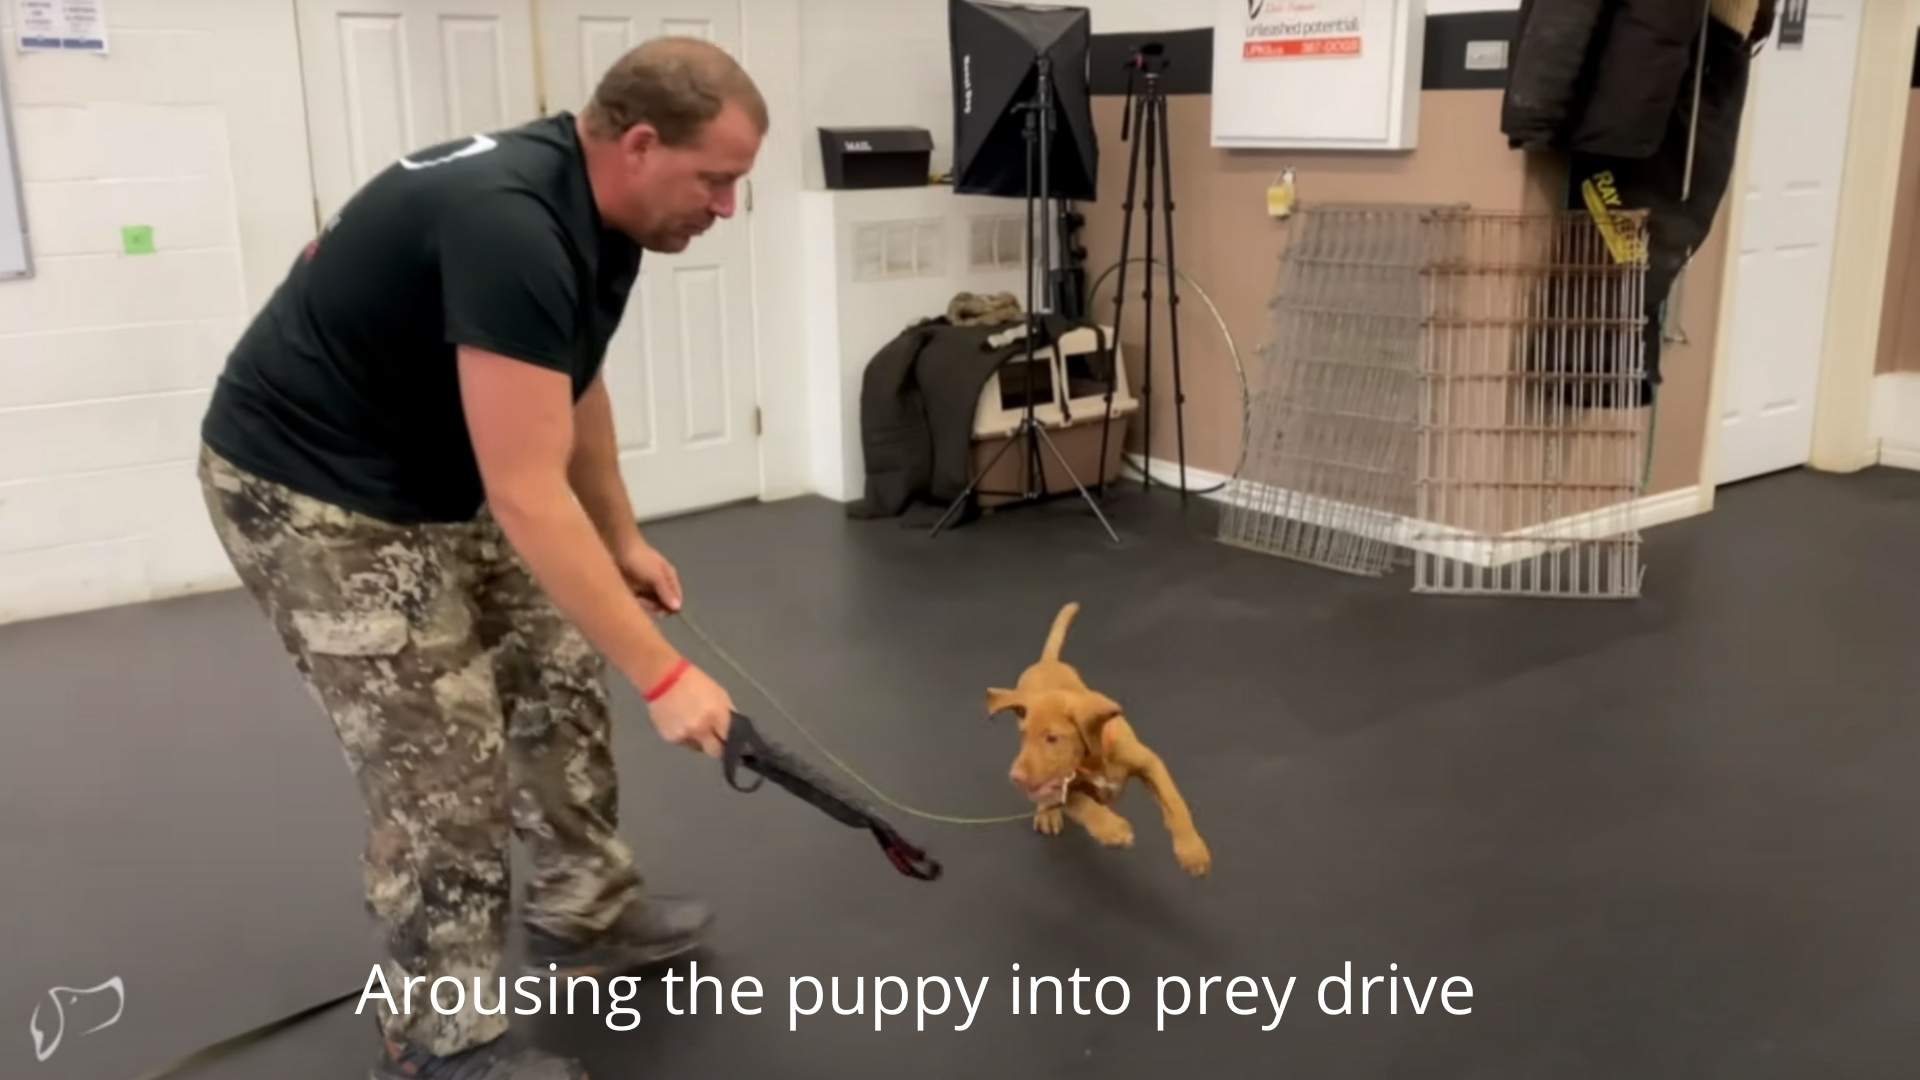 arousing the puppy into prey drive